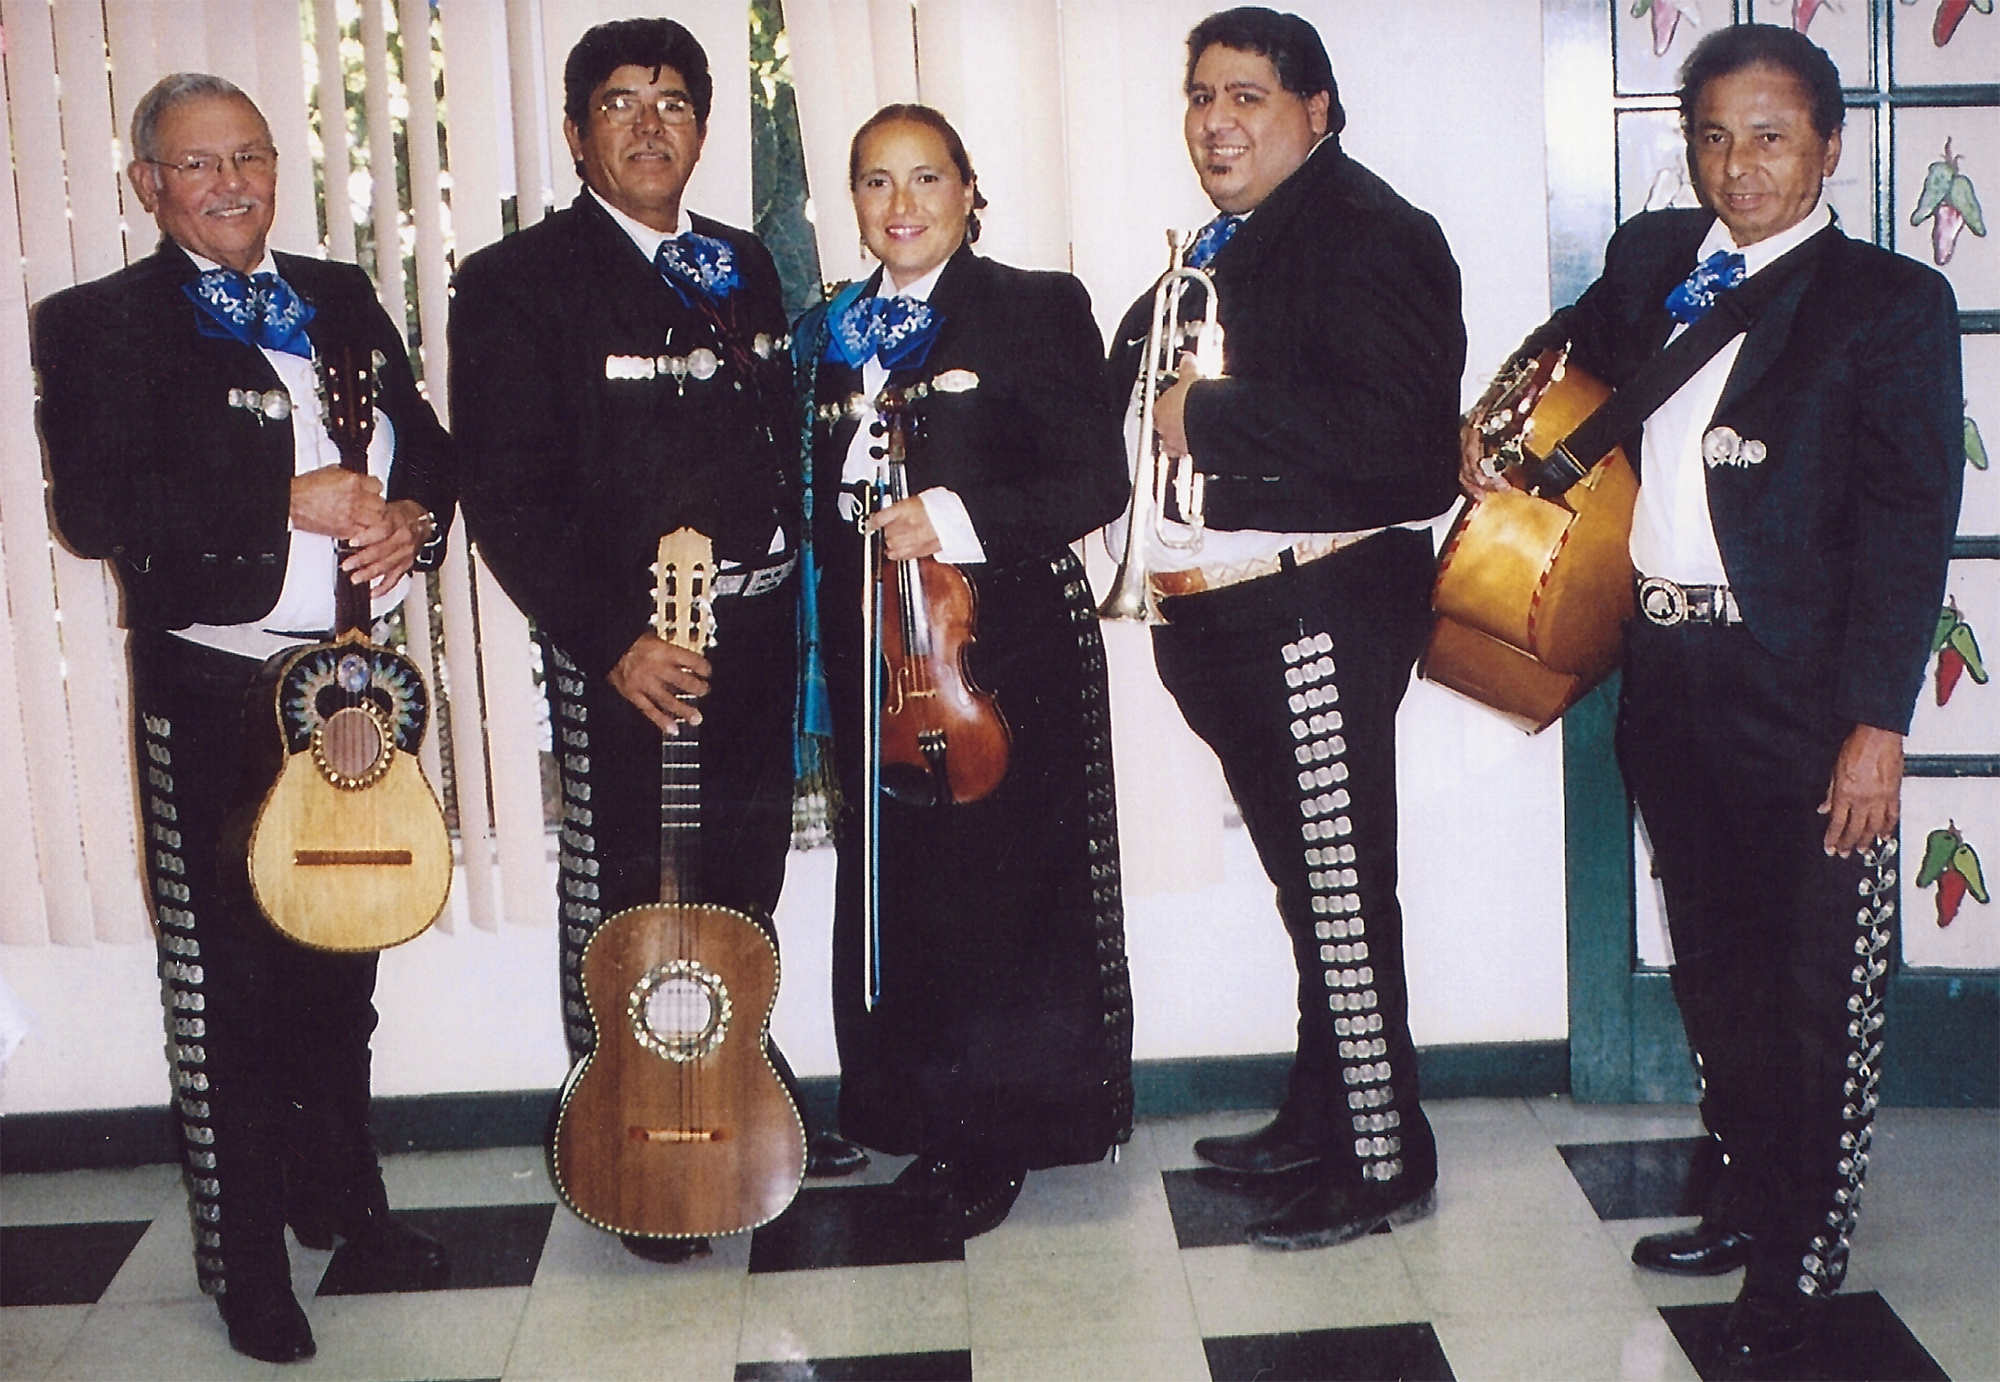 Belen with Ramon and the mariachis